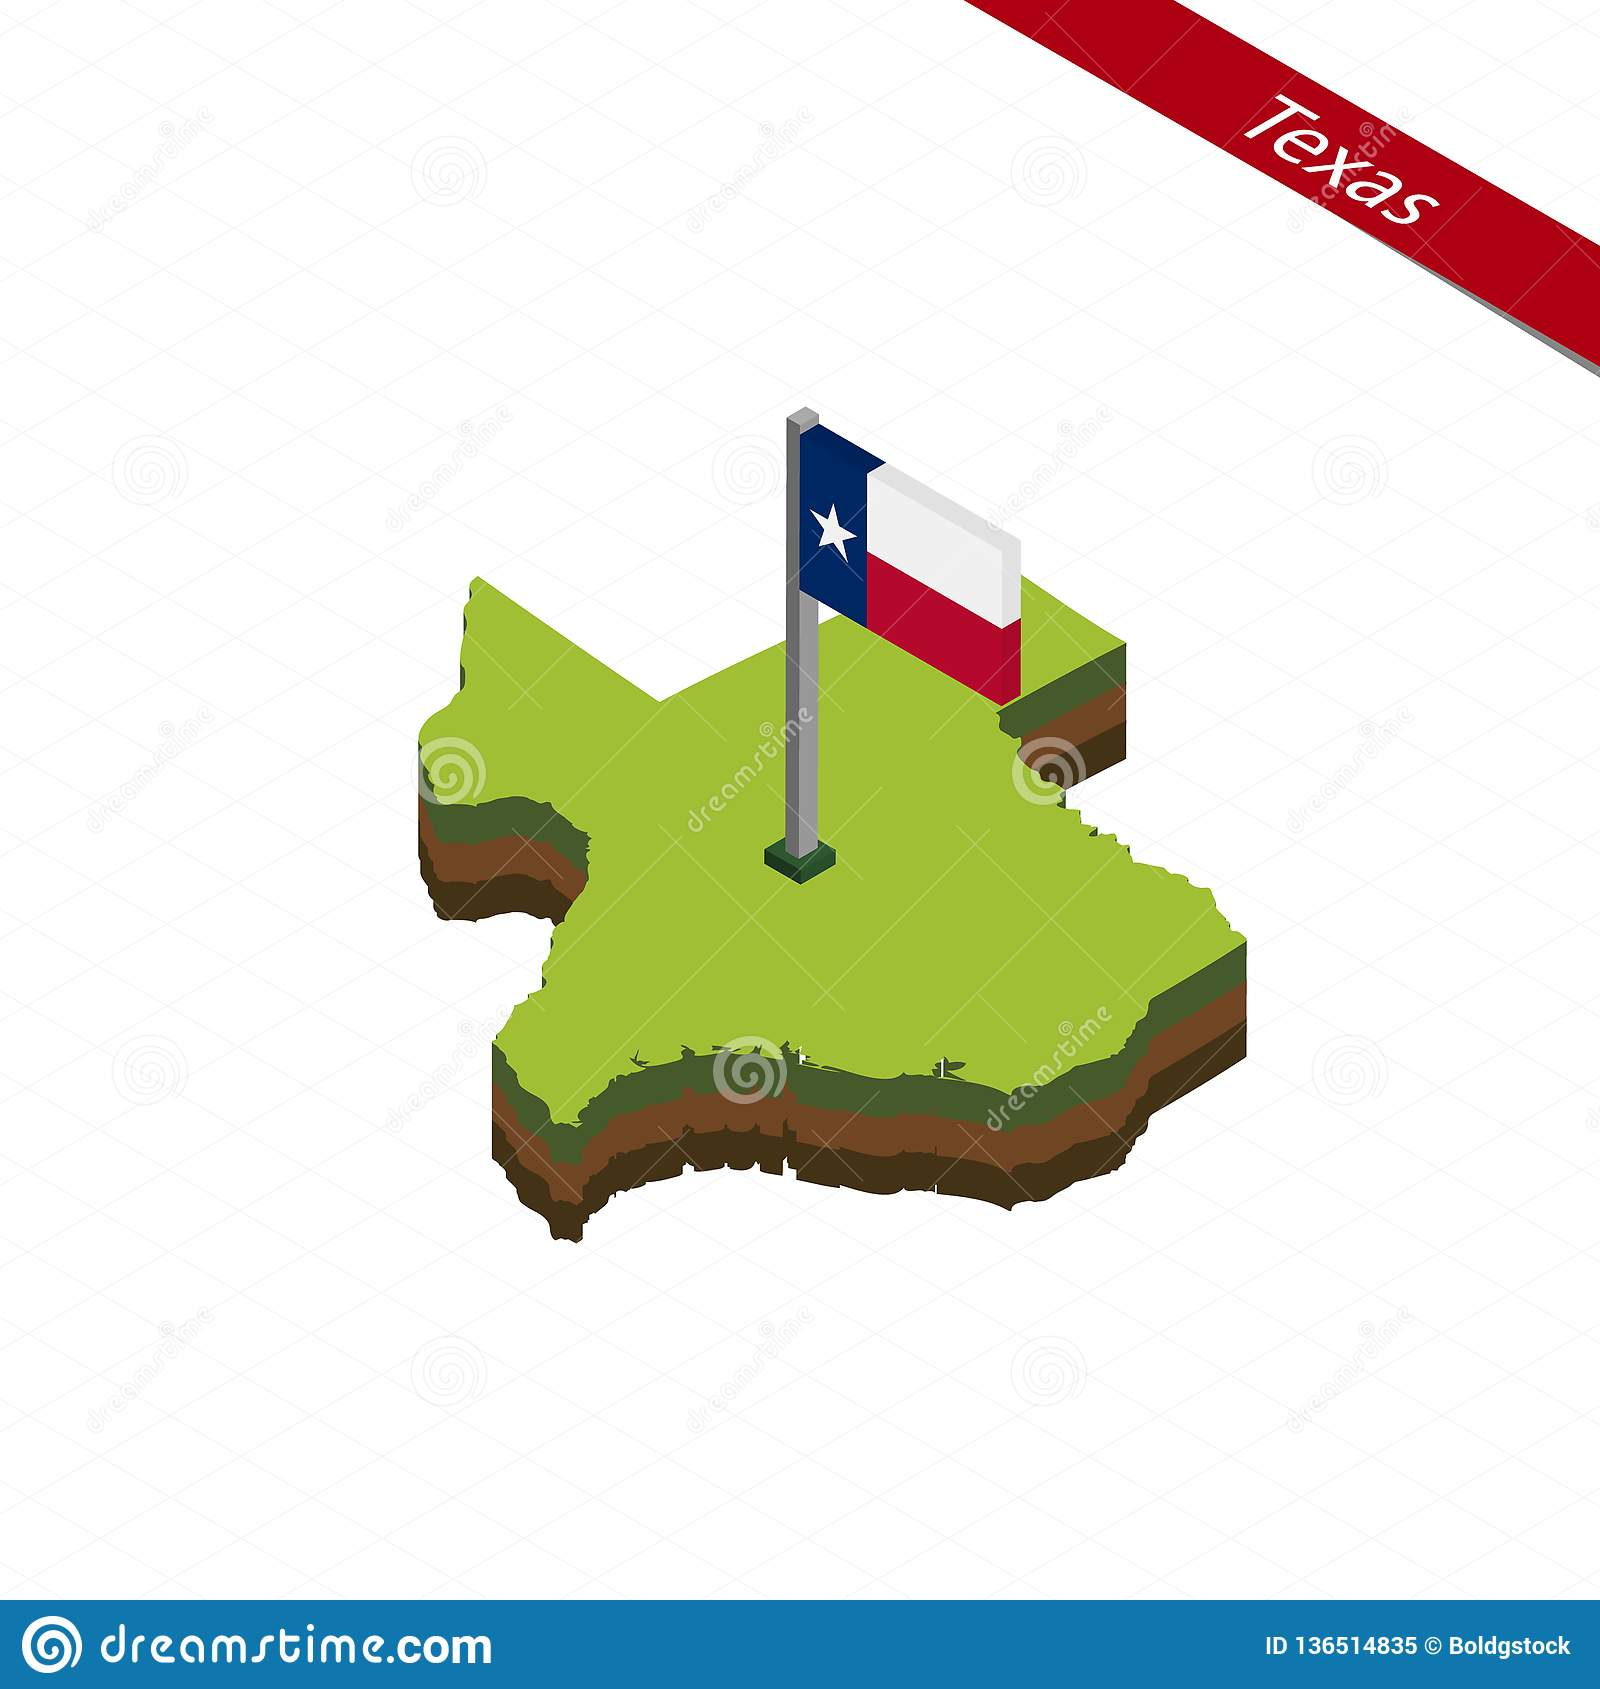 3d Map Of Texas.Texas Isometric Map And Flag Vector Illustration Stock Vector